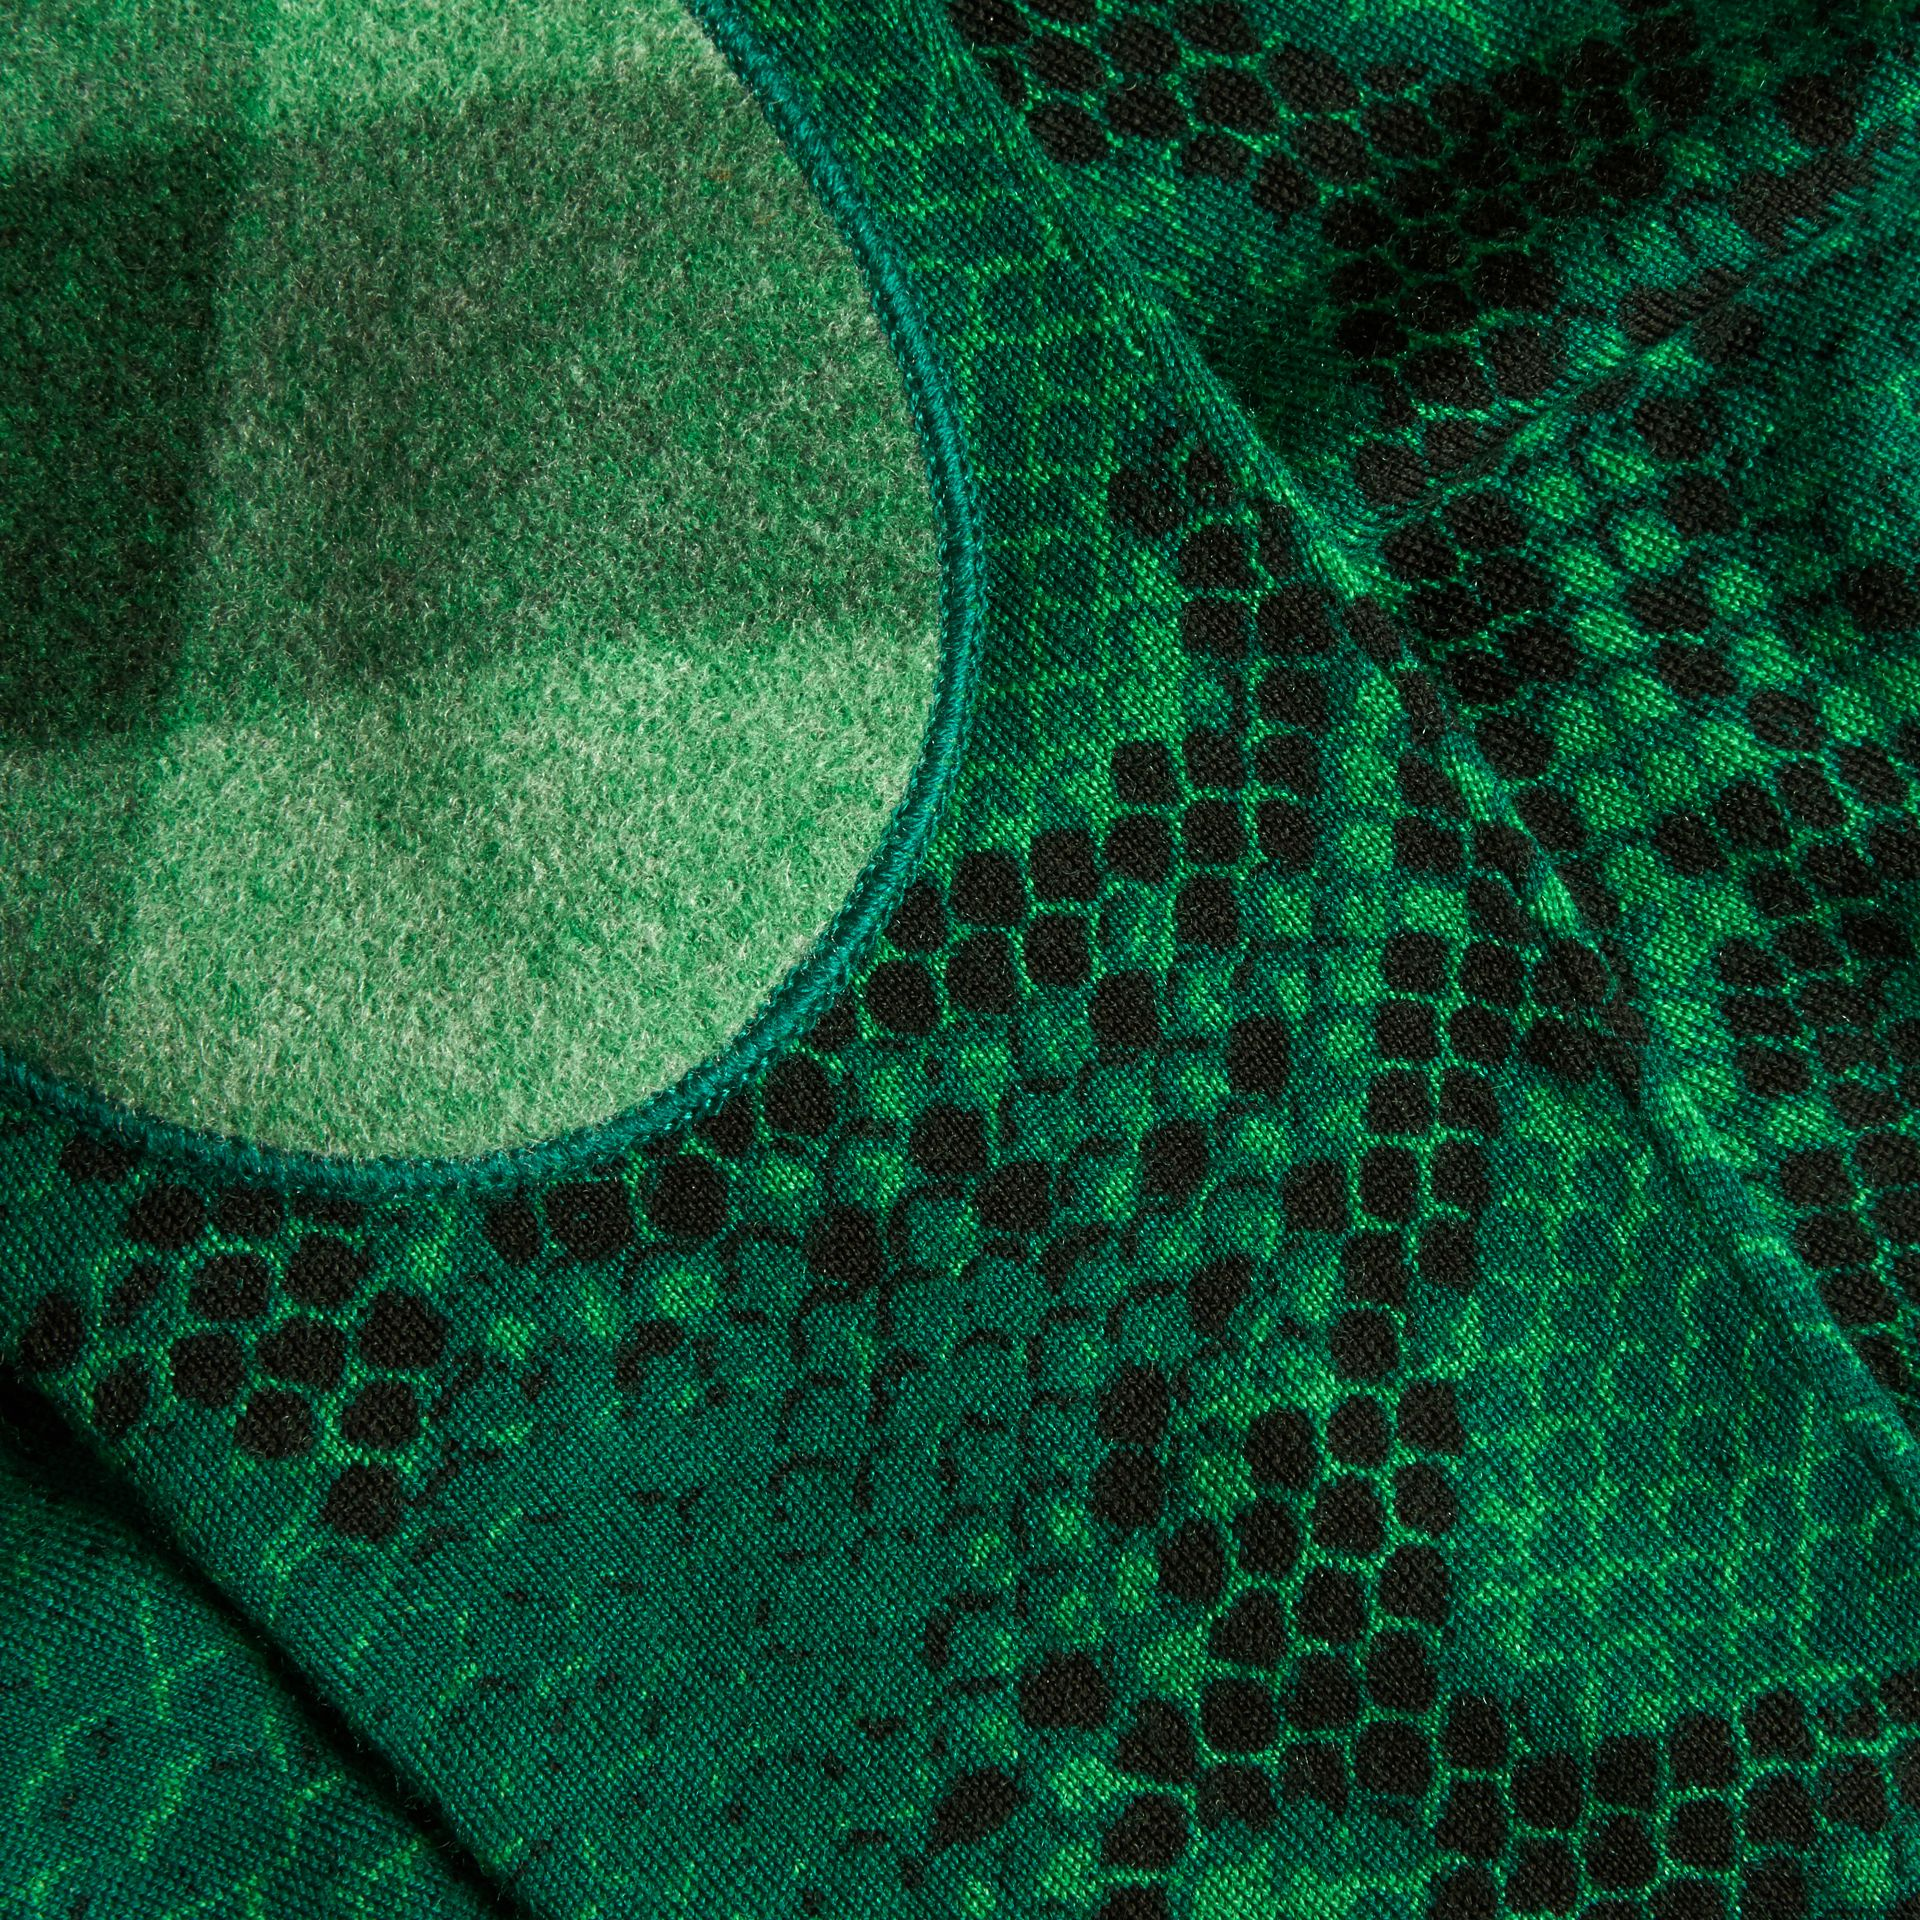 Pigment green Check Detail Python Print Merino Wool Sweater Pigment Green - gallery image 2